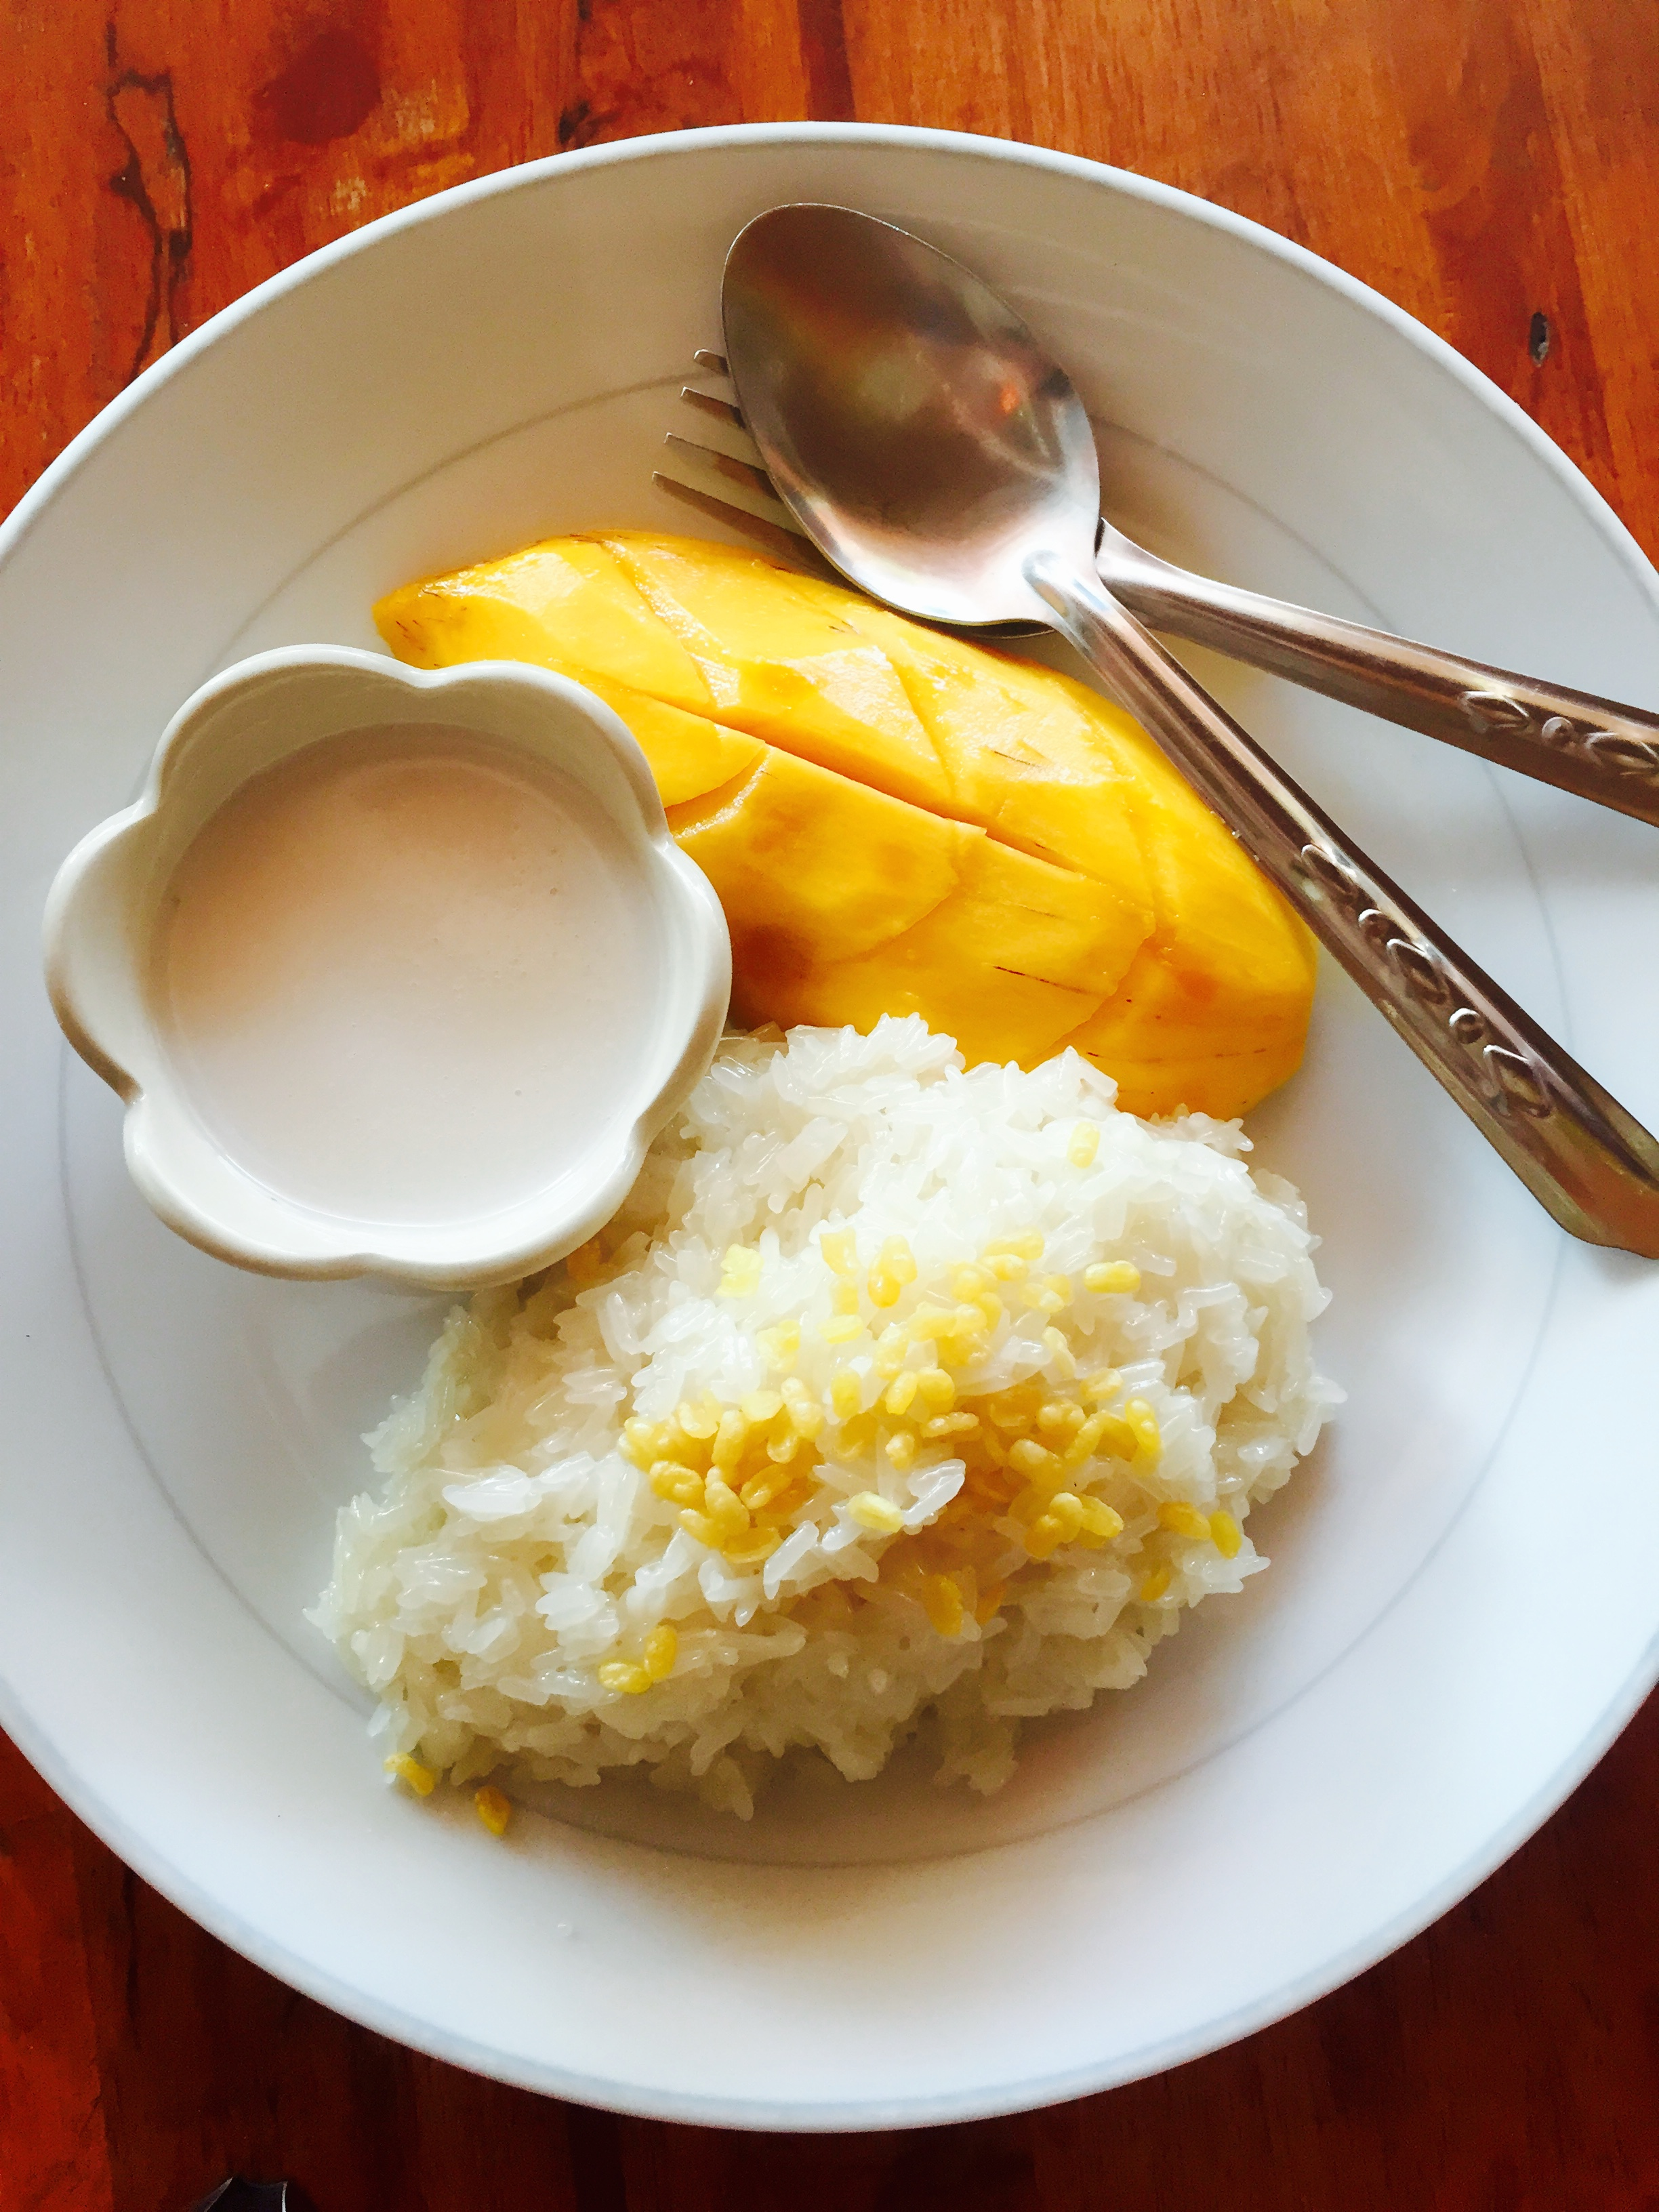 The BEST mango and sticky rice I've ever had. So beautifully presented, too!